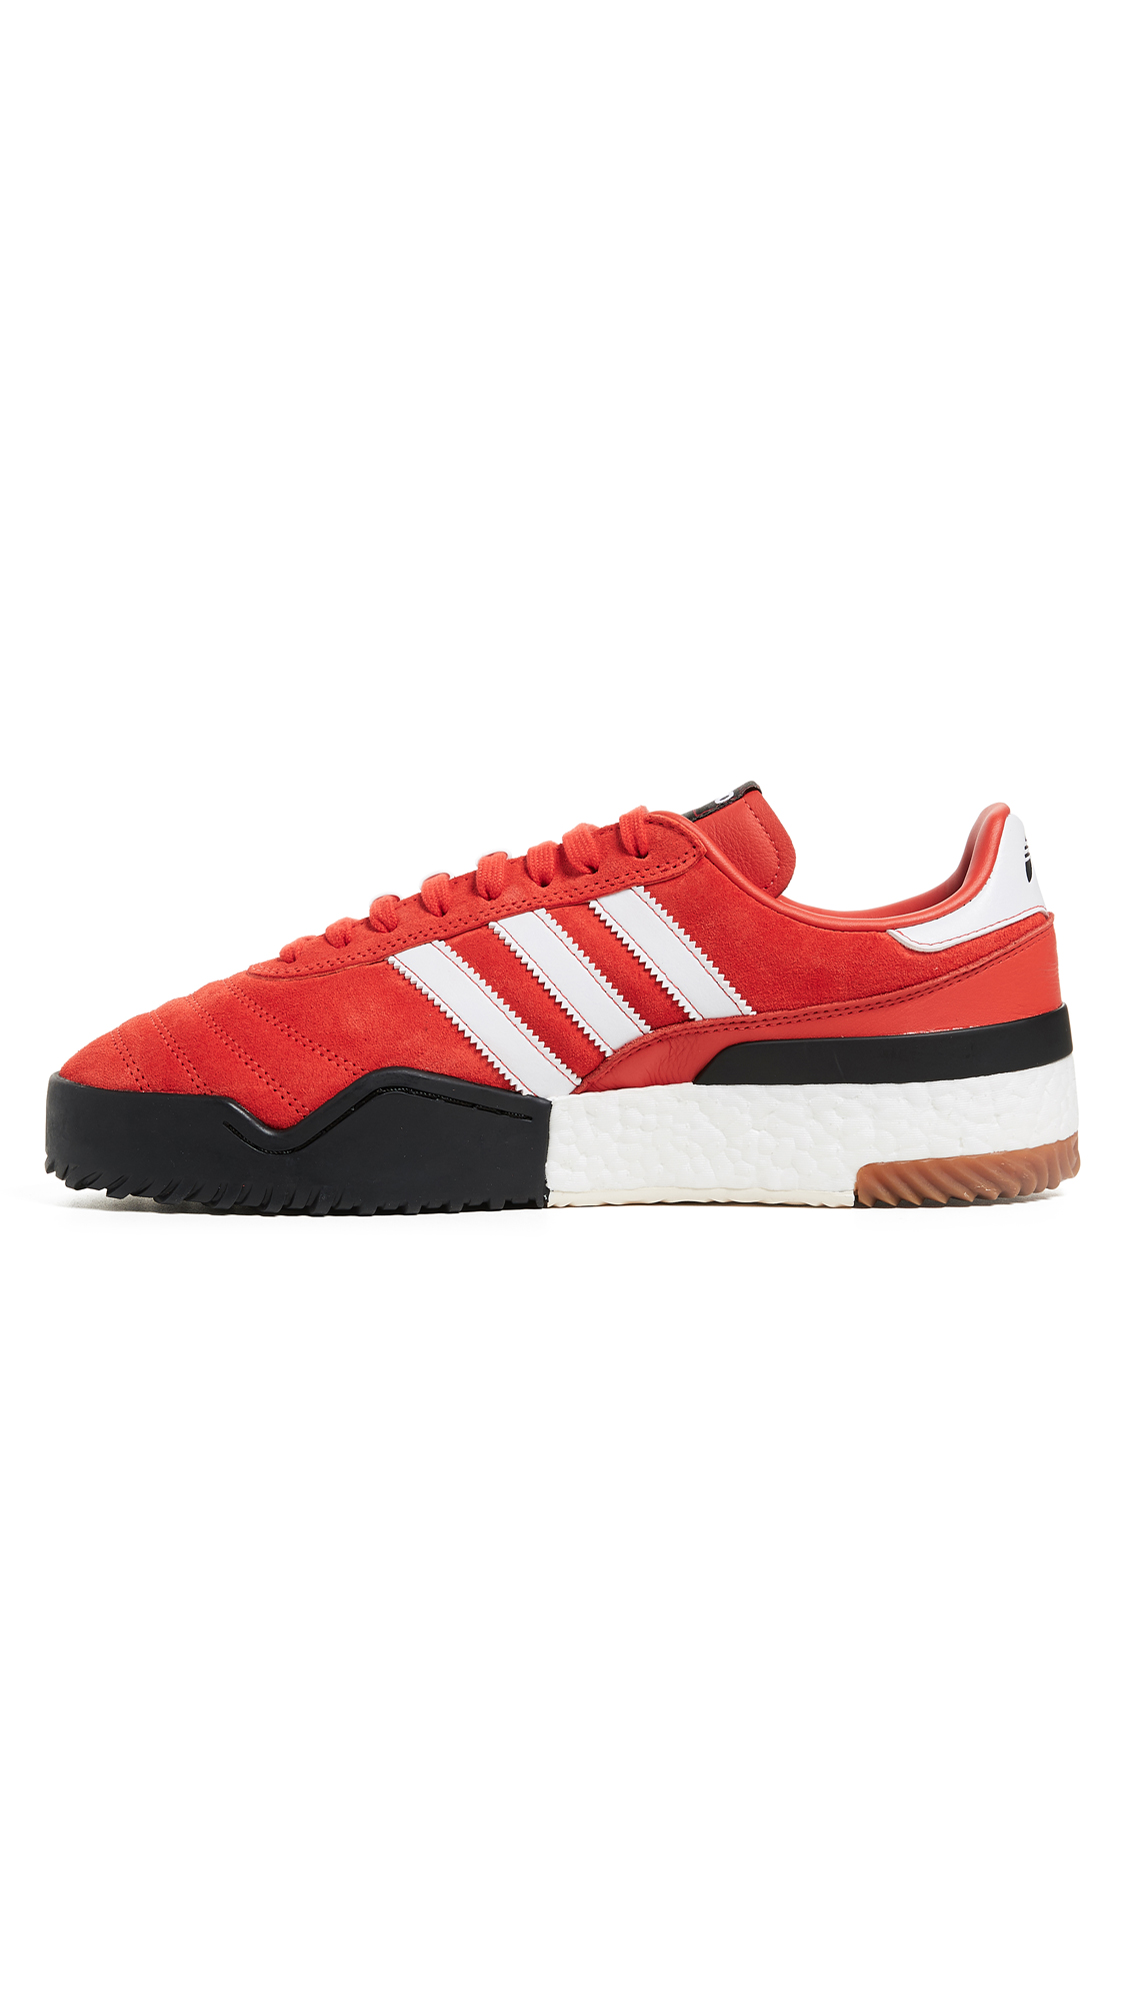 save off 5acc4 13424 adidas Originals by Alexander Wang Bball Soccer Sneaker  EAS